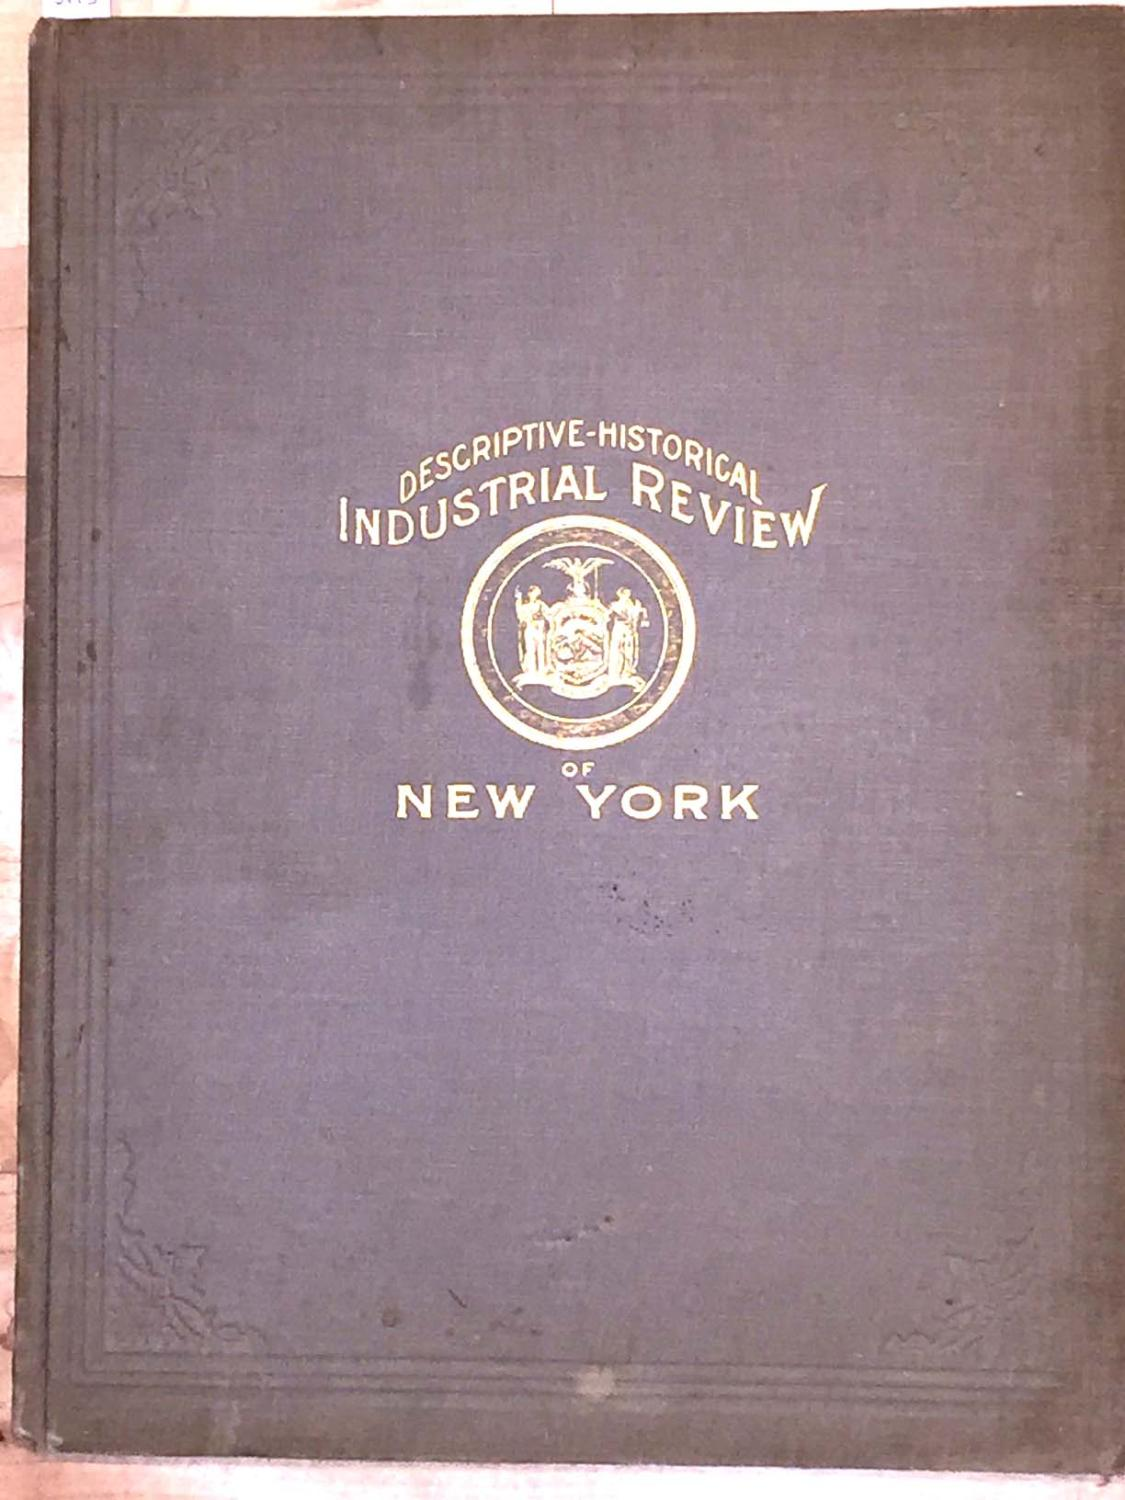 A Descriptive Review of the Commercial Industrial Agricultural Historical Development of the State of New York book image